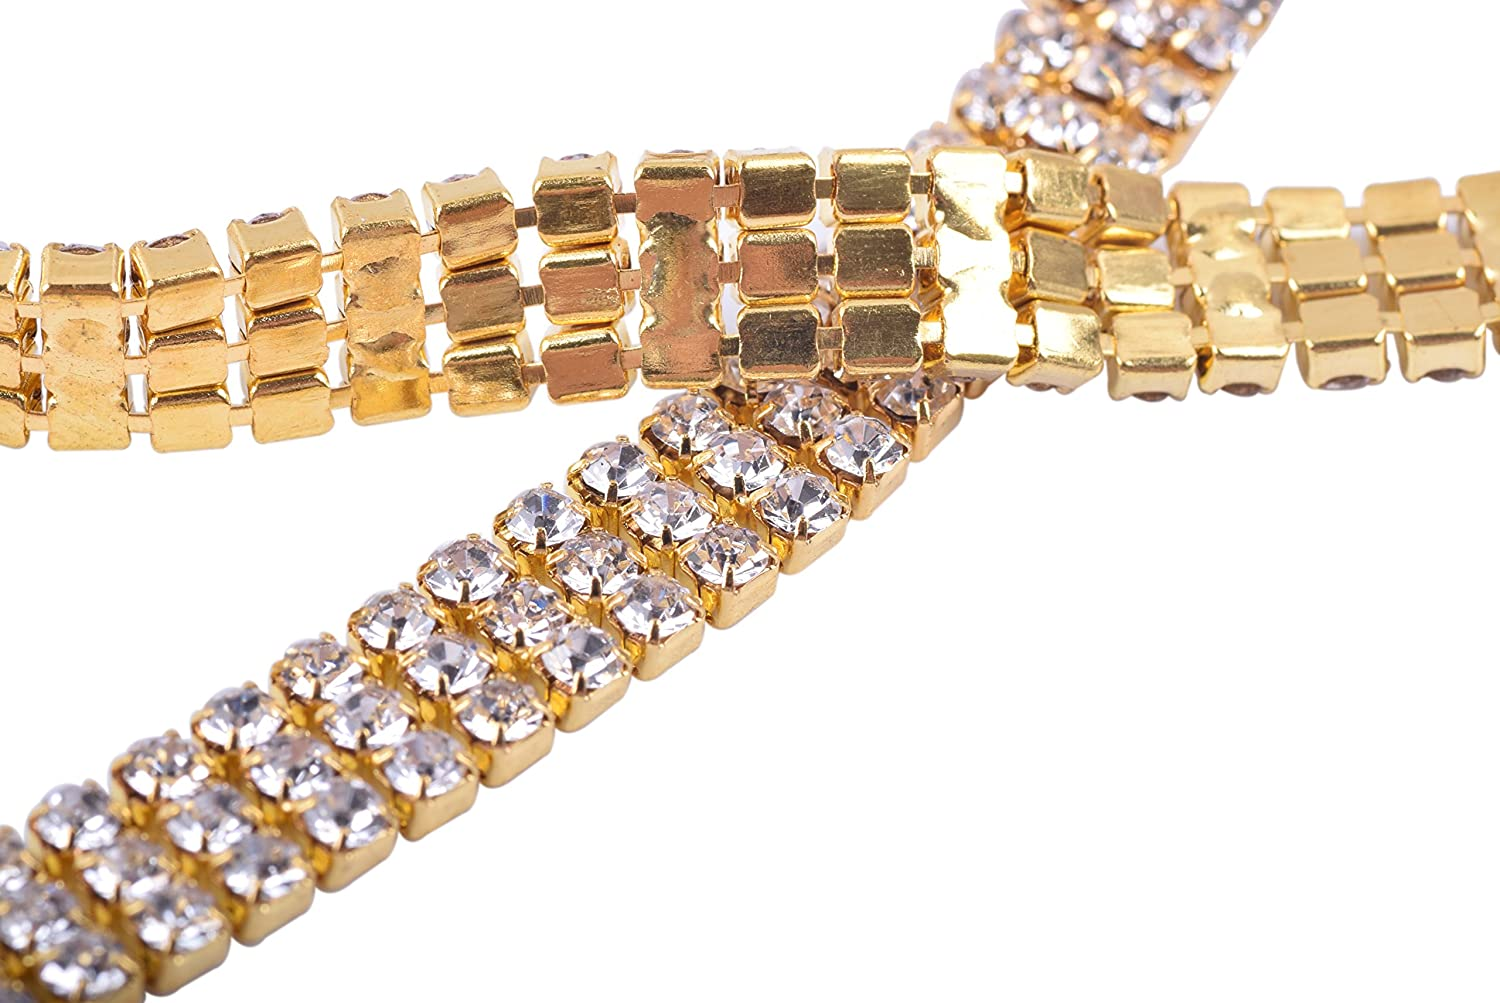 KAOYOO 2 Rows 2 Yards Crystal Rhinestone Close Chain Trim,SS08//2.5mm//0.1,Golden Chain with Clear Crystal Beads